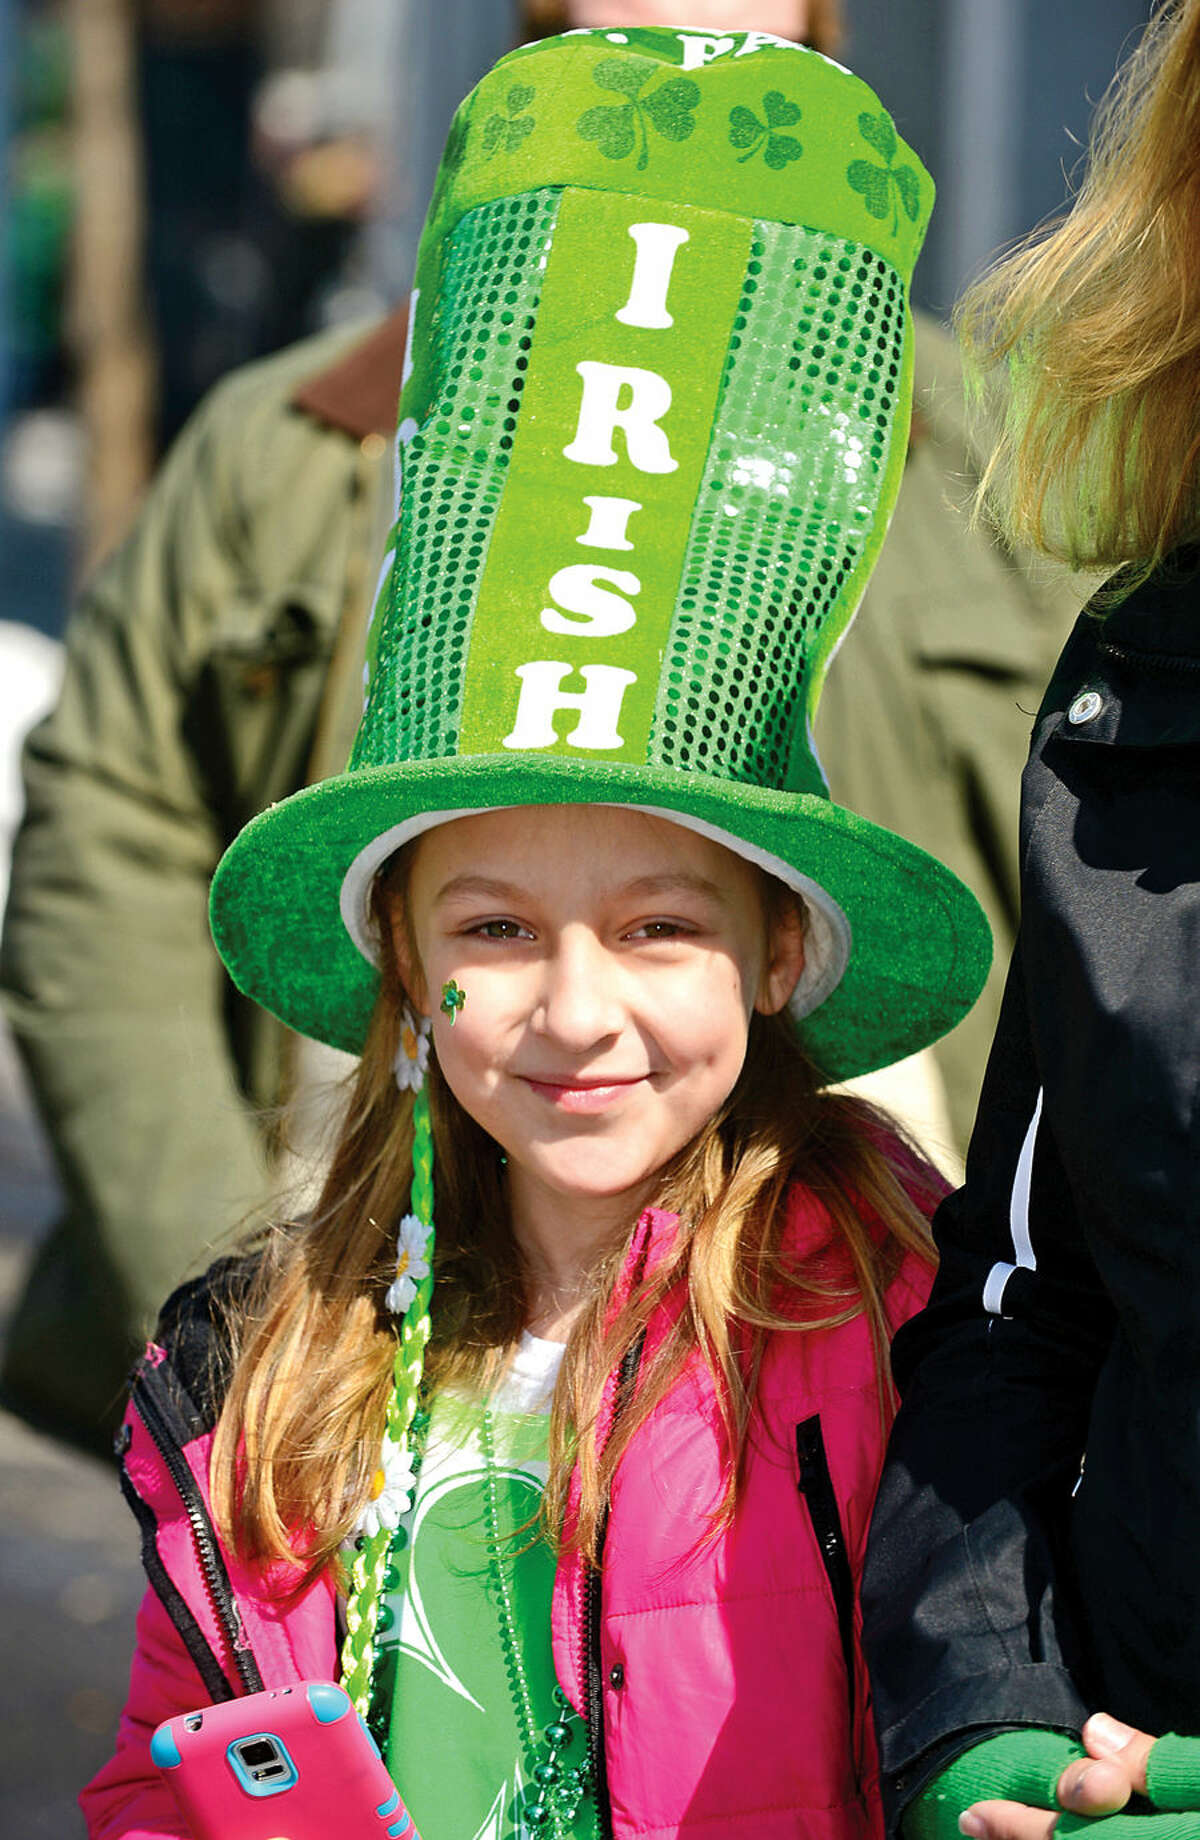 Hour photo / Erik Trautmann Stamford St Patrick's Day Parade participants and local residents including Ashlyn Fllod, 9, enjoy the sunny Saturday afternoon as the procession proceeds down Bedford St.